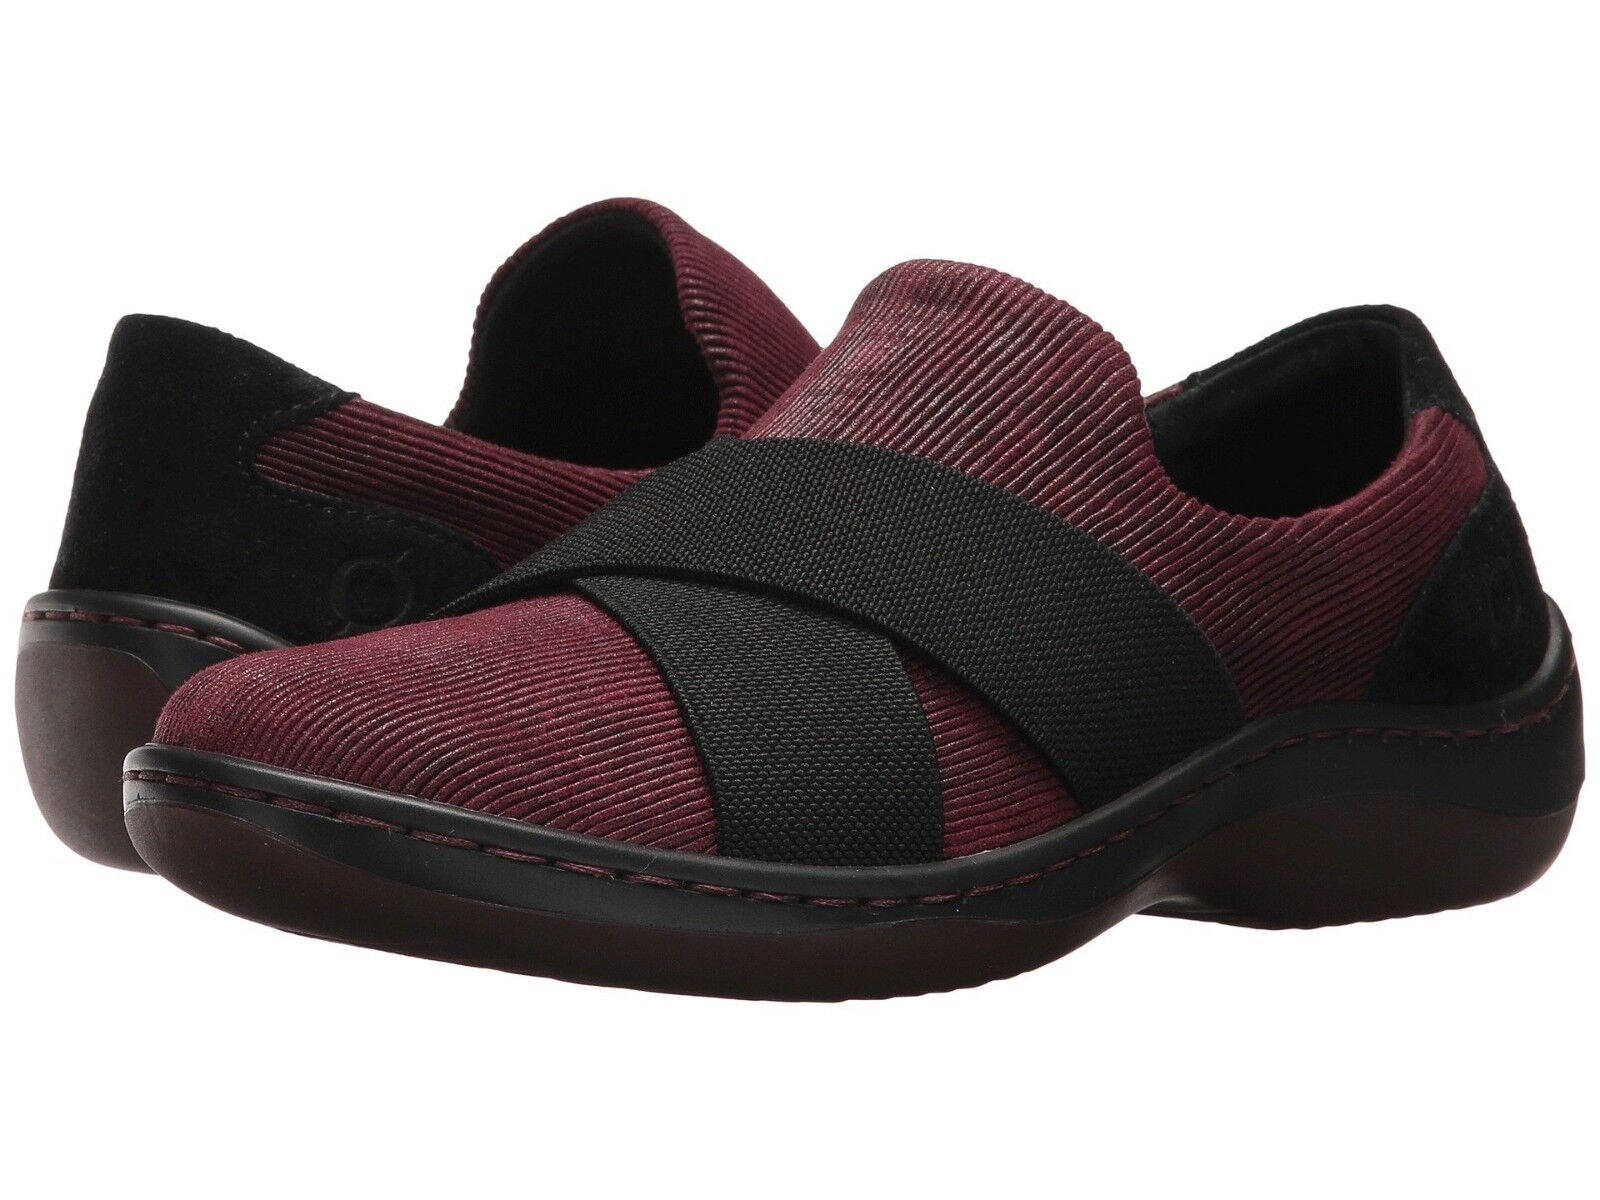 Born shoes new, outstanding comfort and support - Red, Blue or Black